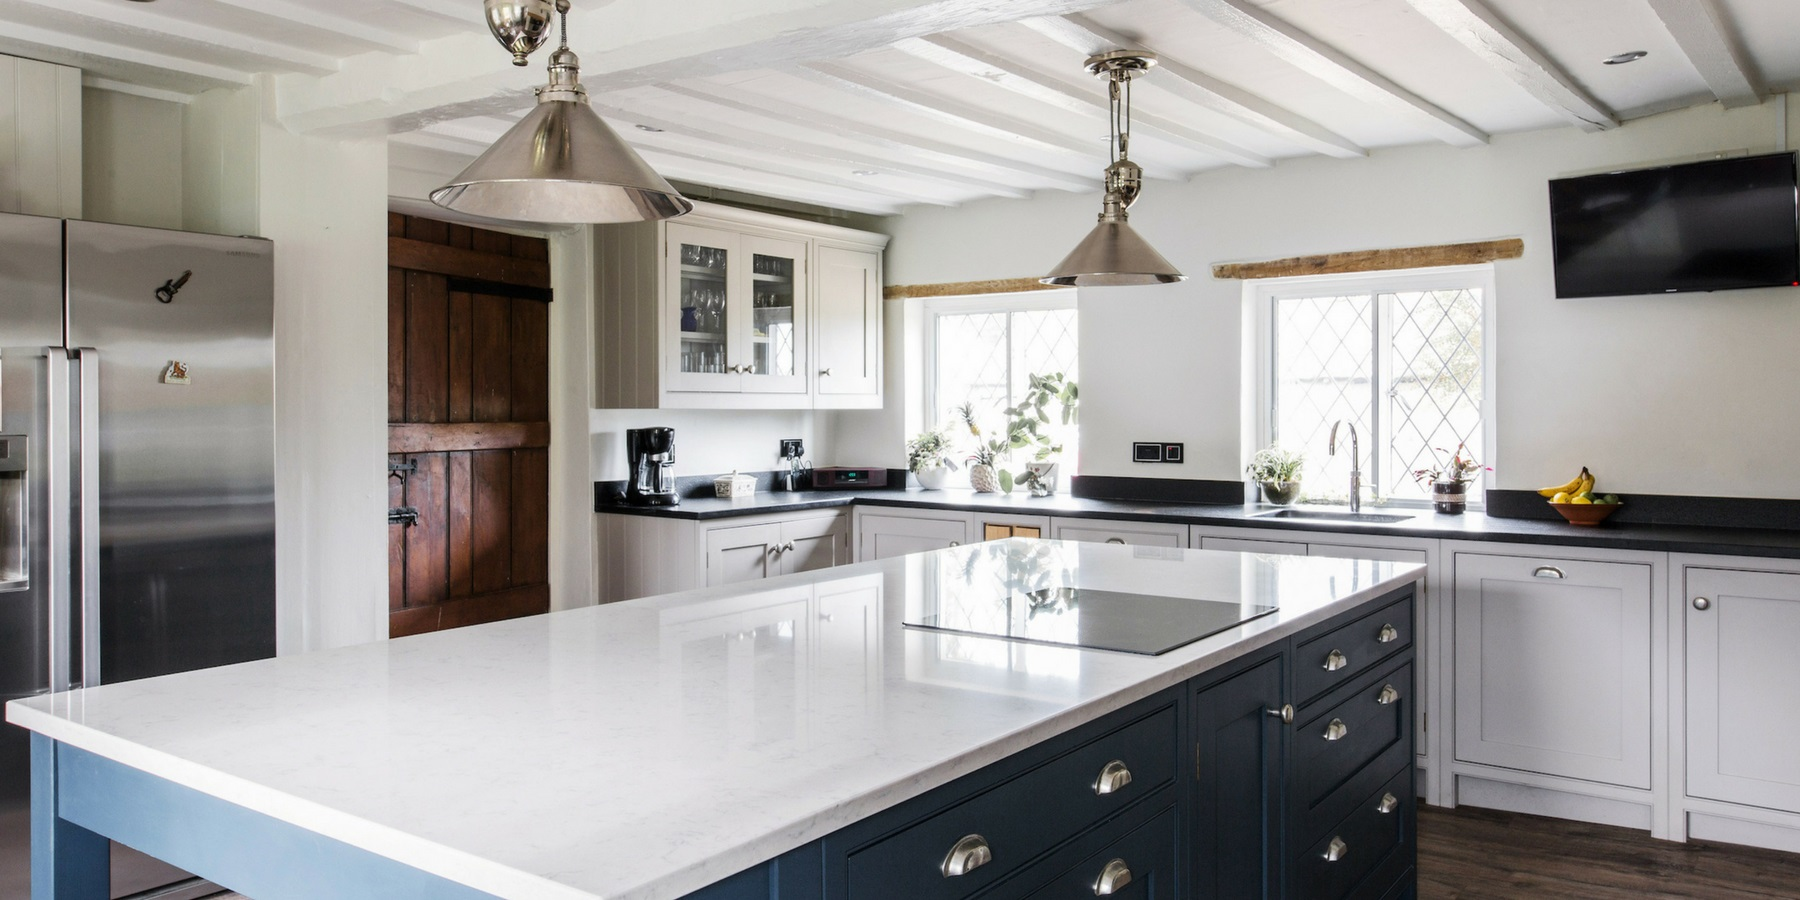 Bespoke Cottage Style Shaker Kitchen - Burlanes luxury country cottage style Wellsdown kitchen with white worktops and induction hob.